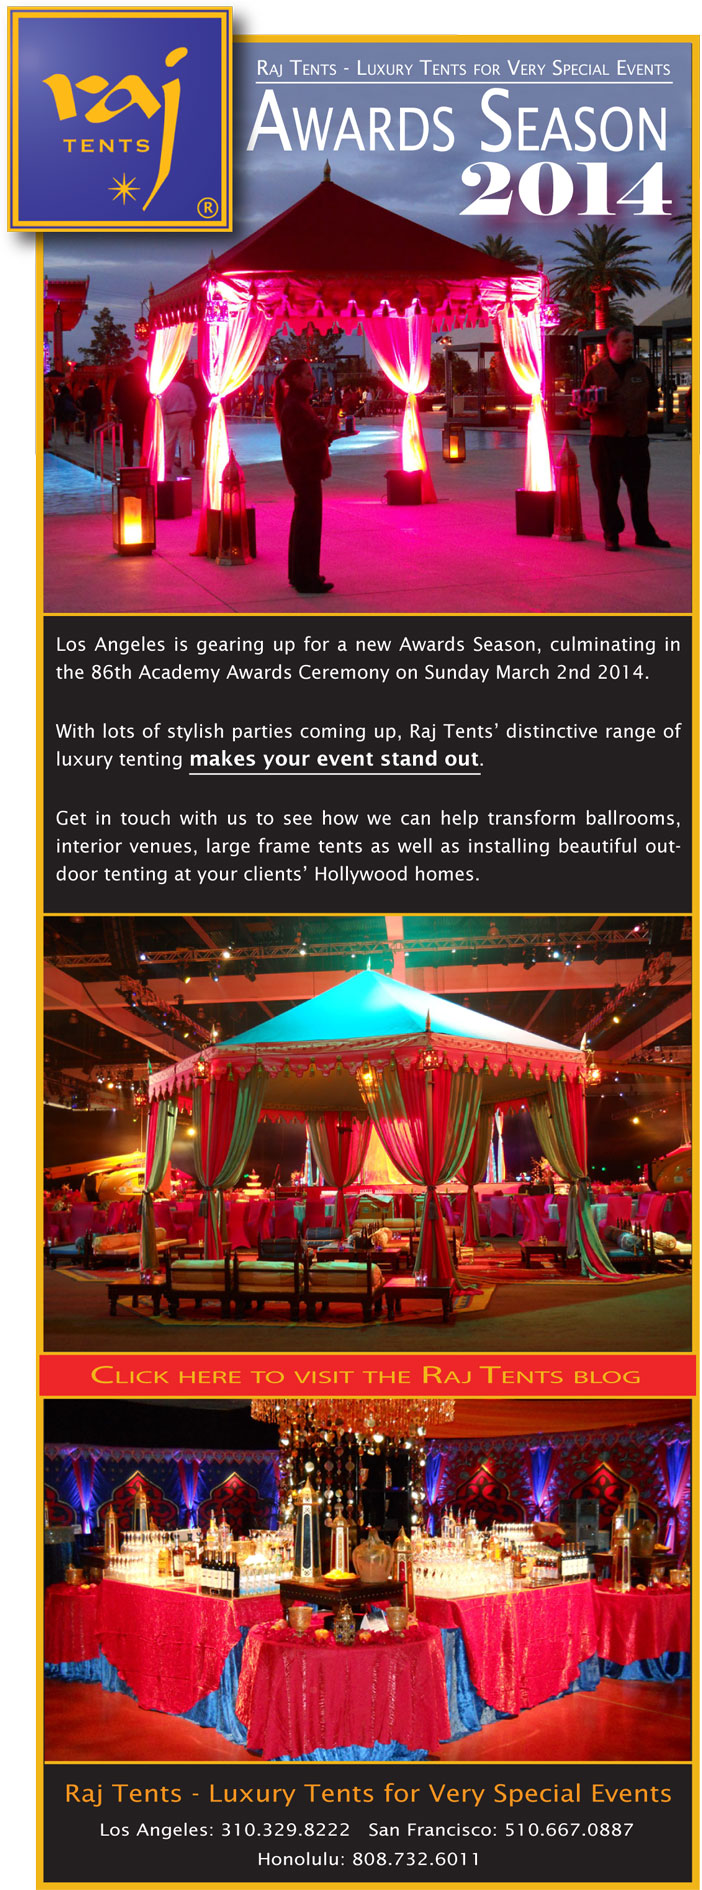 Raj Tents awards season parties 2014